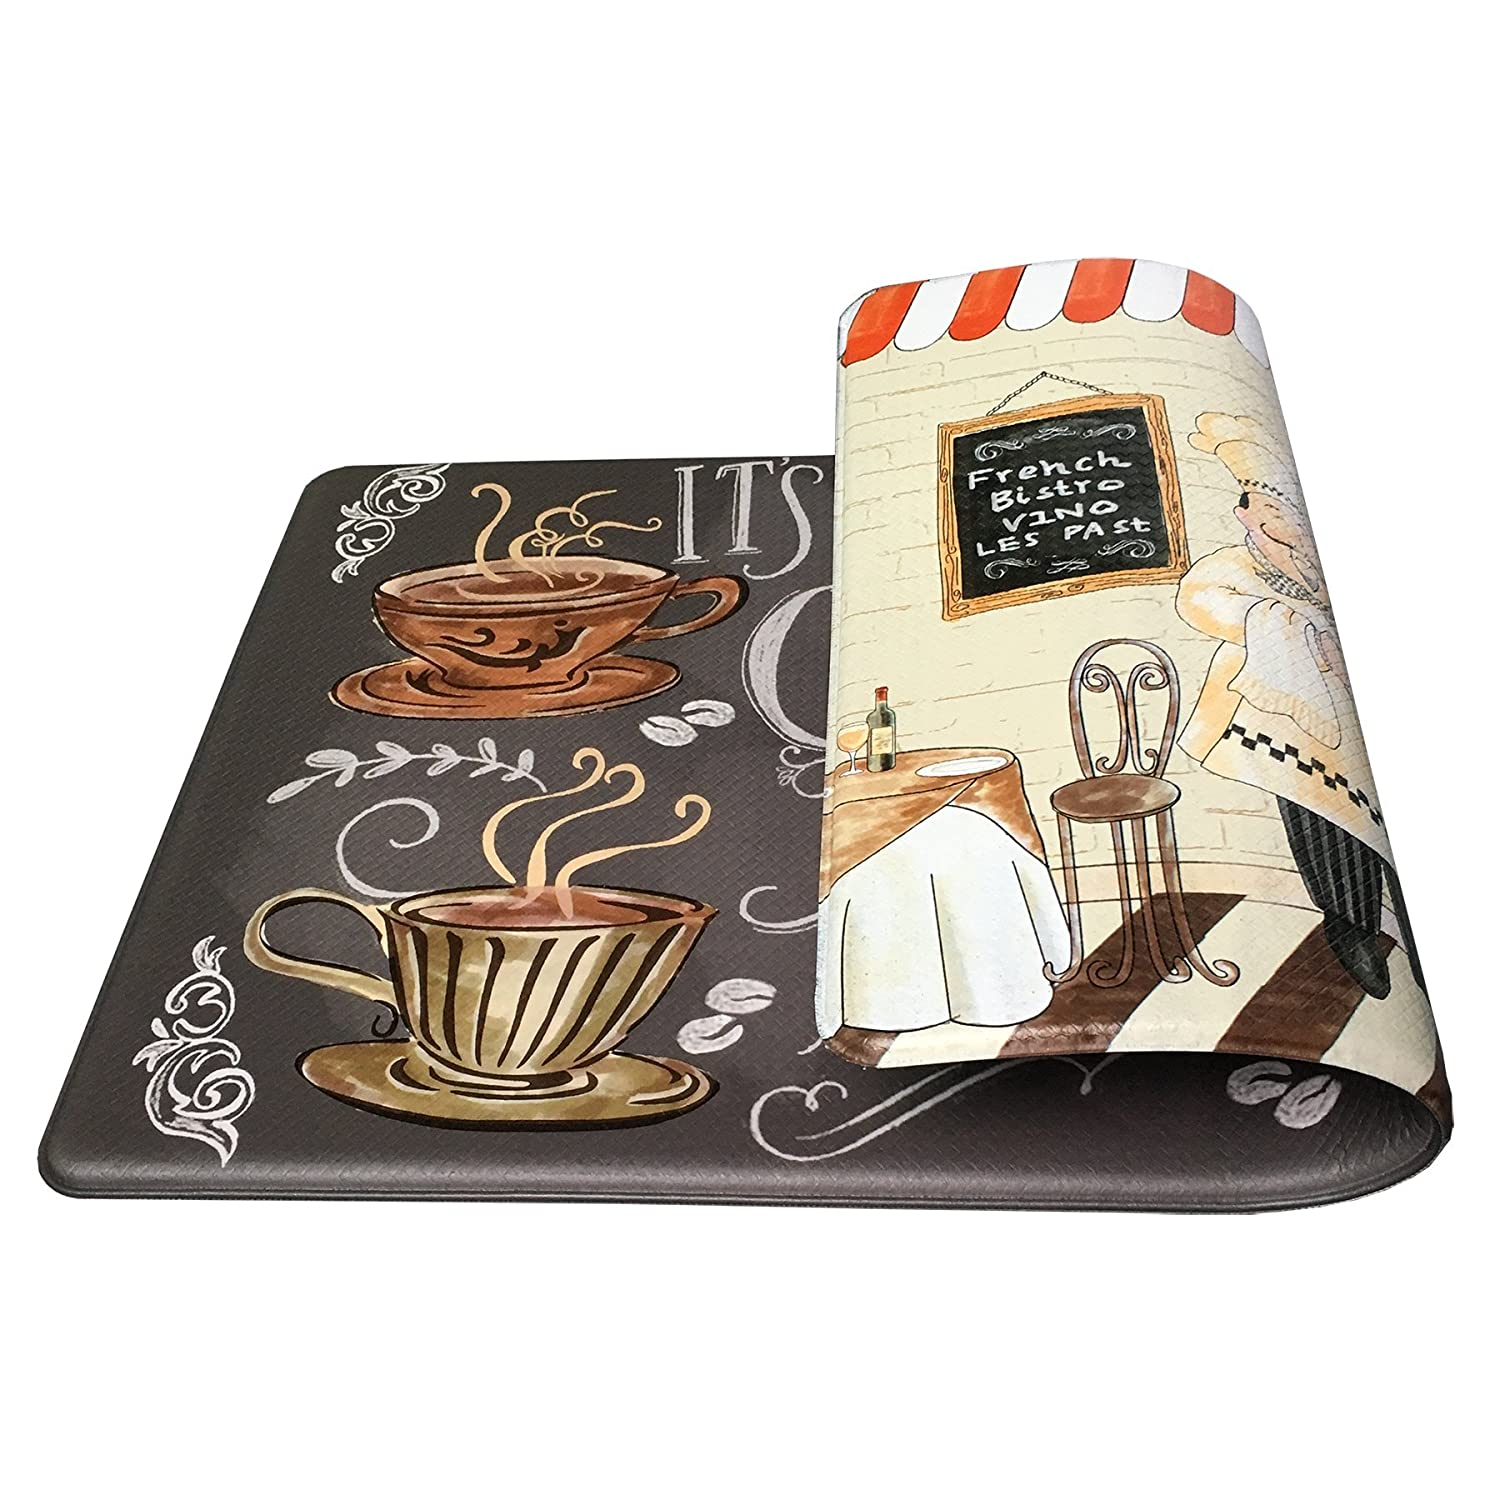 "Art3d Premium Double-Sided Anti-Fatigue Chef Rug, Anti-Fatigue Comfort Mat. Multi-Purpose Decorative Standing Mat for the Kitchen, Bathroom, Laundry Room or Office, 18"" X 30"""